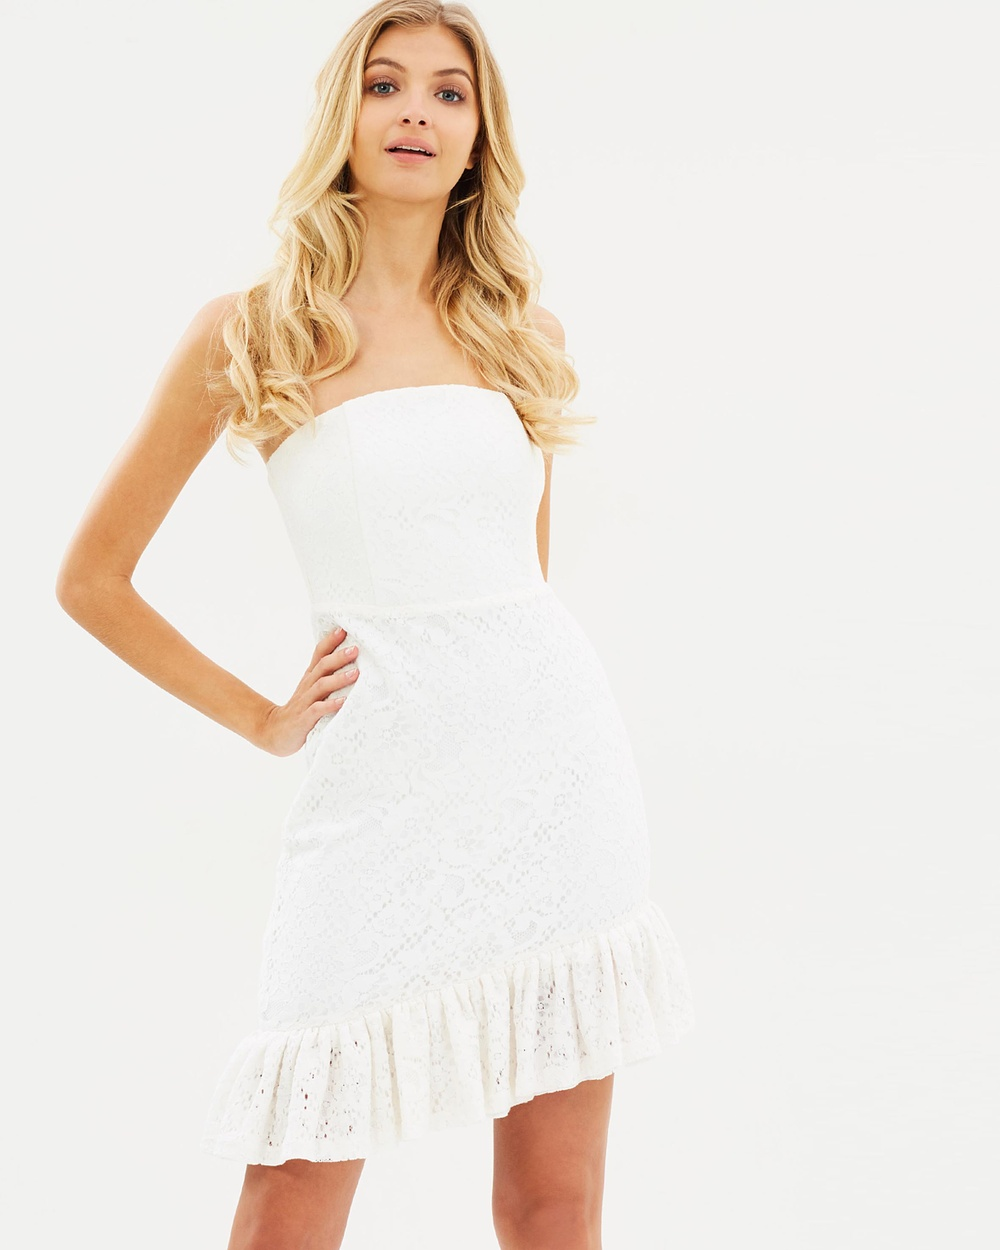 Atmos & Here ICONIC EXCLUSIVE Kaylee Strapless Lace Dress Dresses White ICONIC EXCLUSIVE Kaylee Strapless Lace Dress